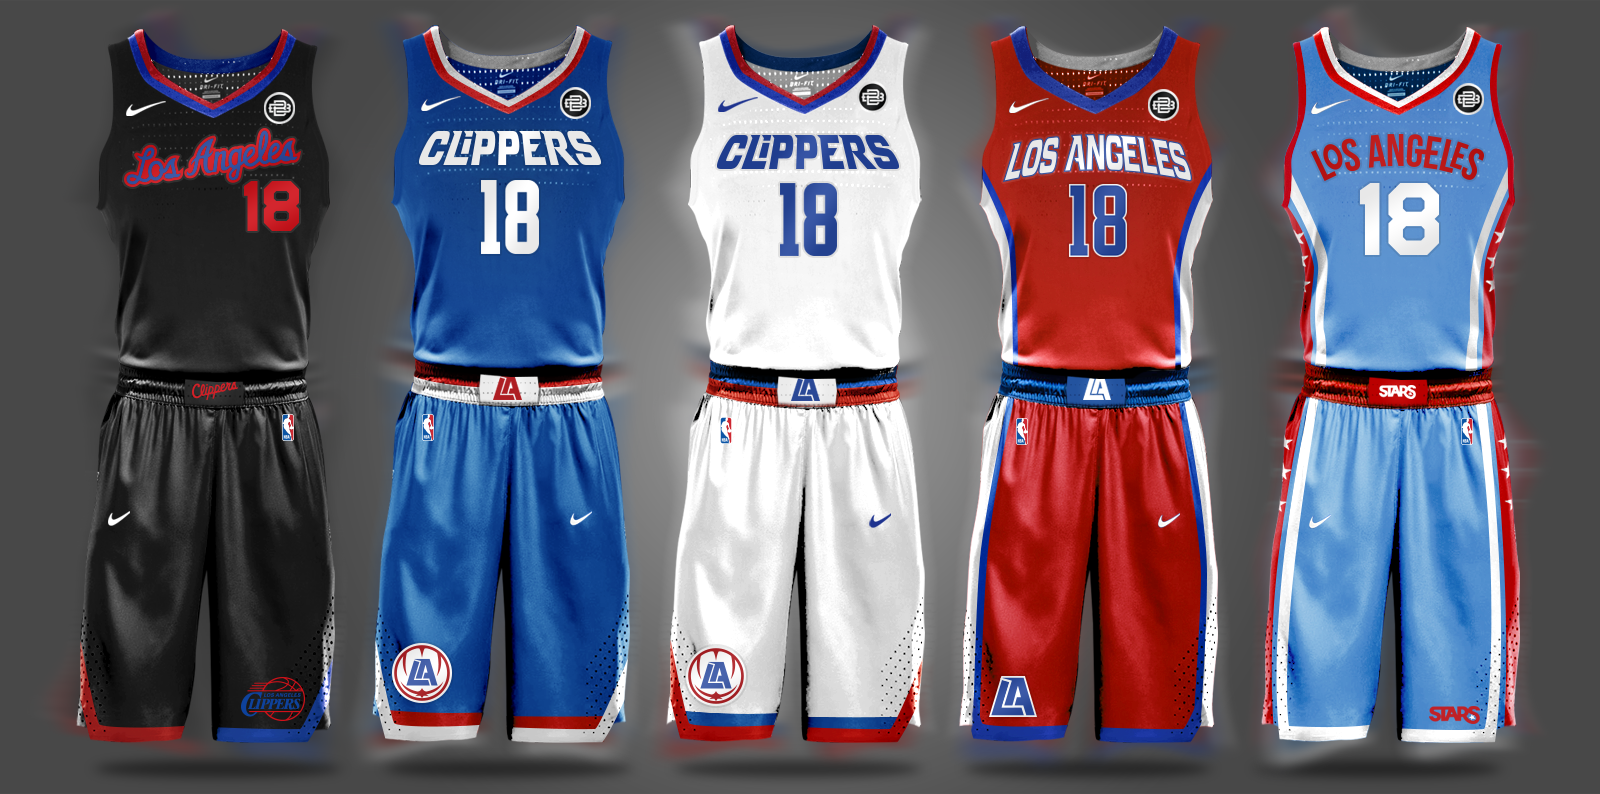 best sneakers 7c4cc 015a9 los angeles clippers jersey 2017